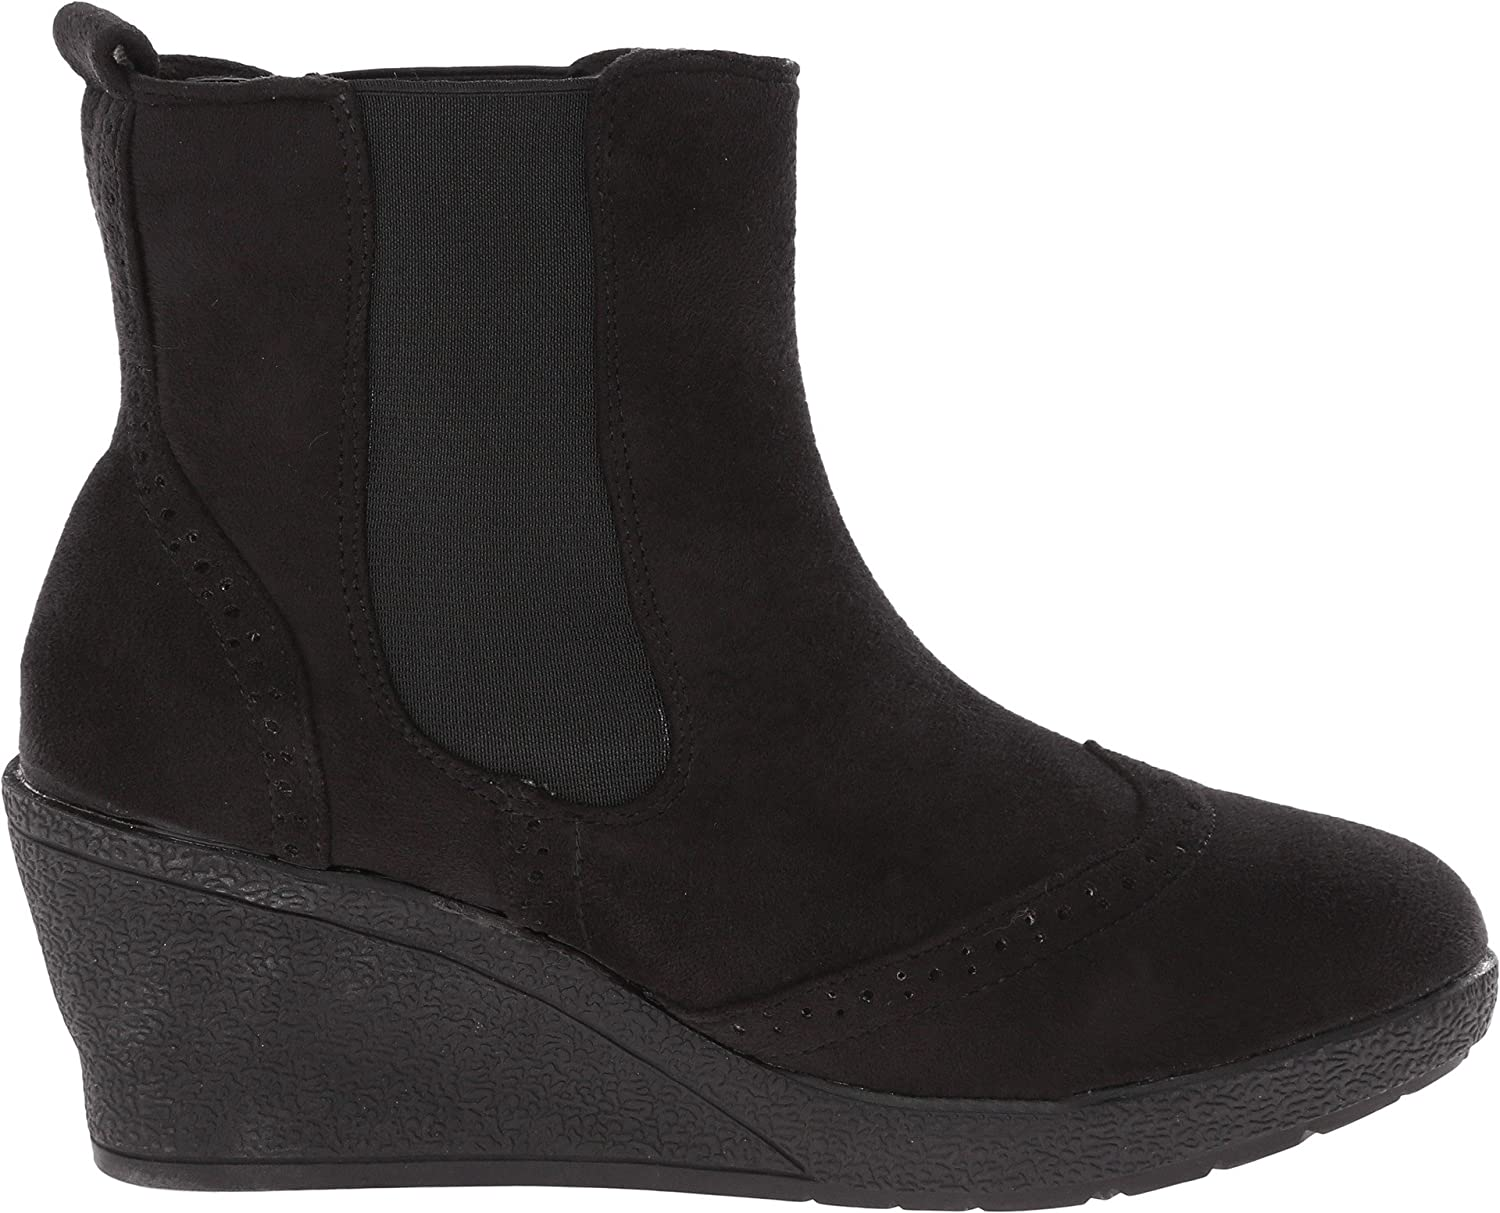 PATRIZIA by Spring Step Womens Fashion Comfort Boots Black